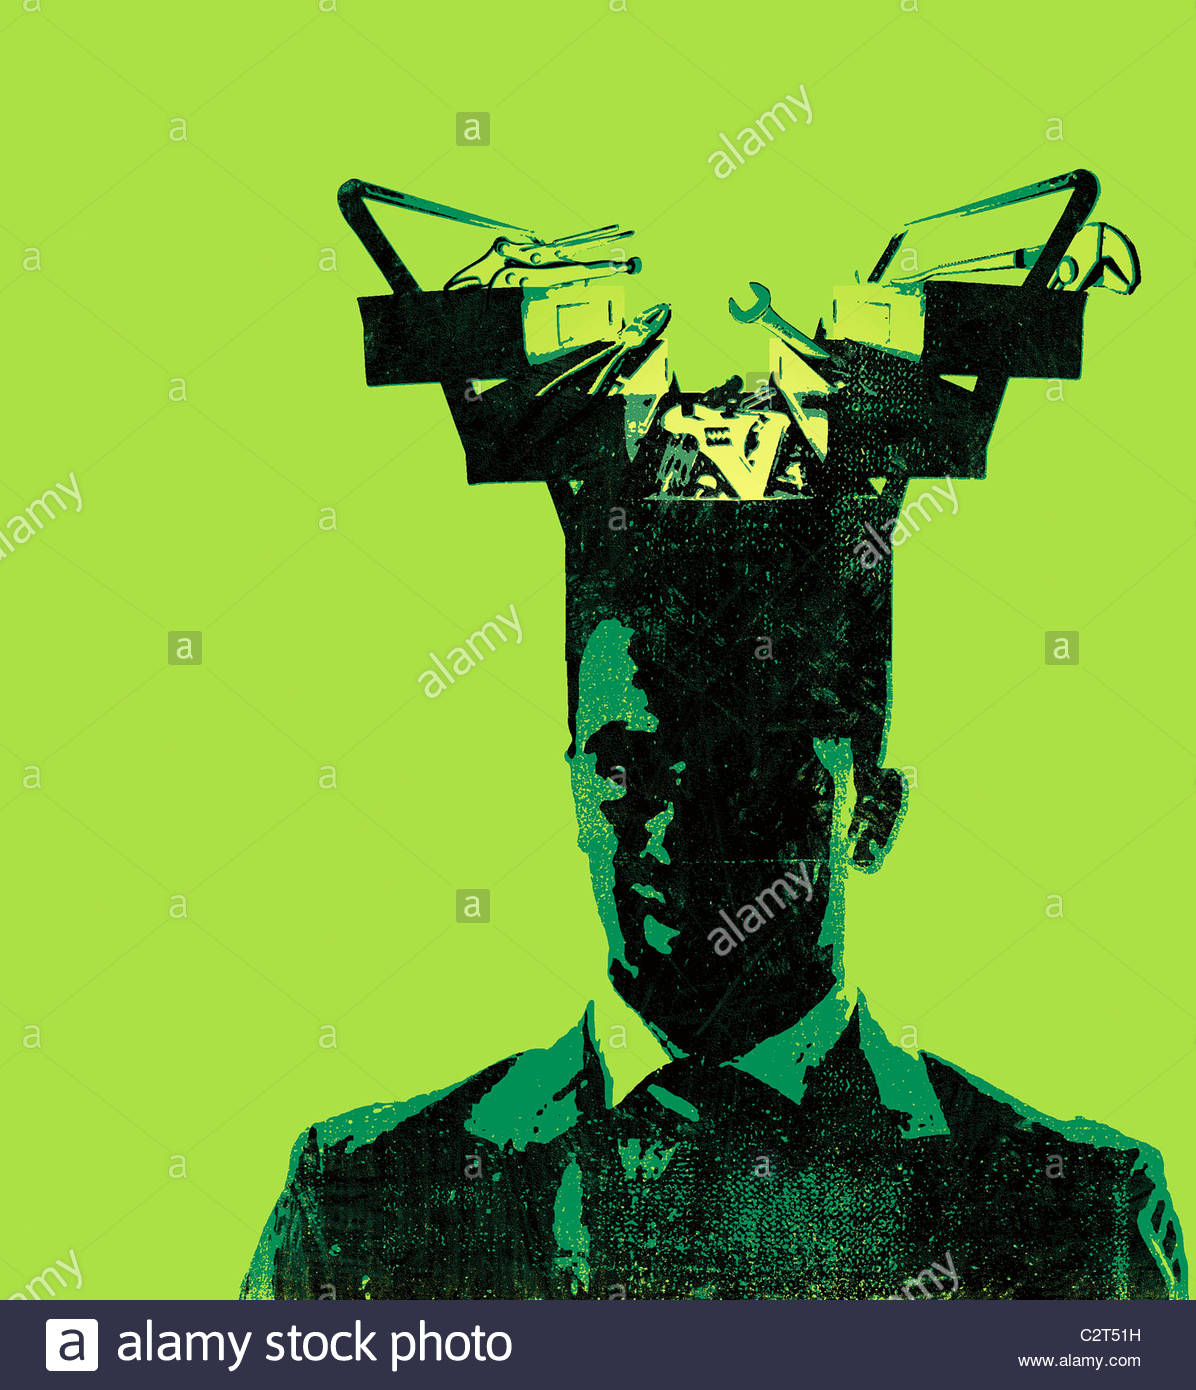 Businessman with toolbox coming from his head - Stock Image